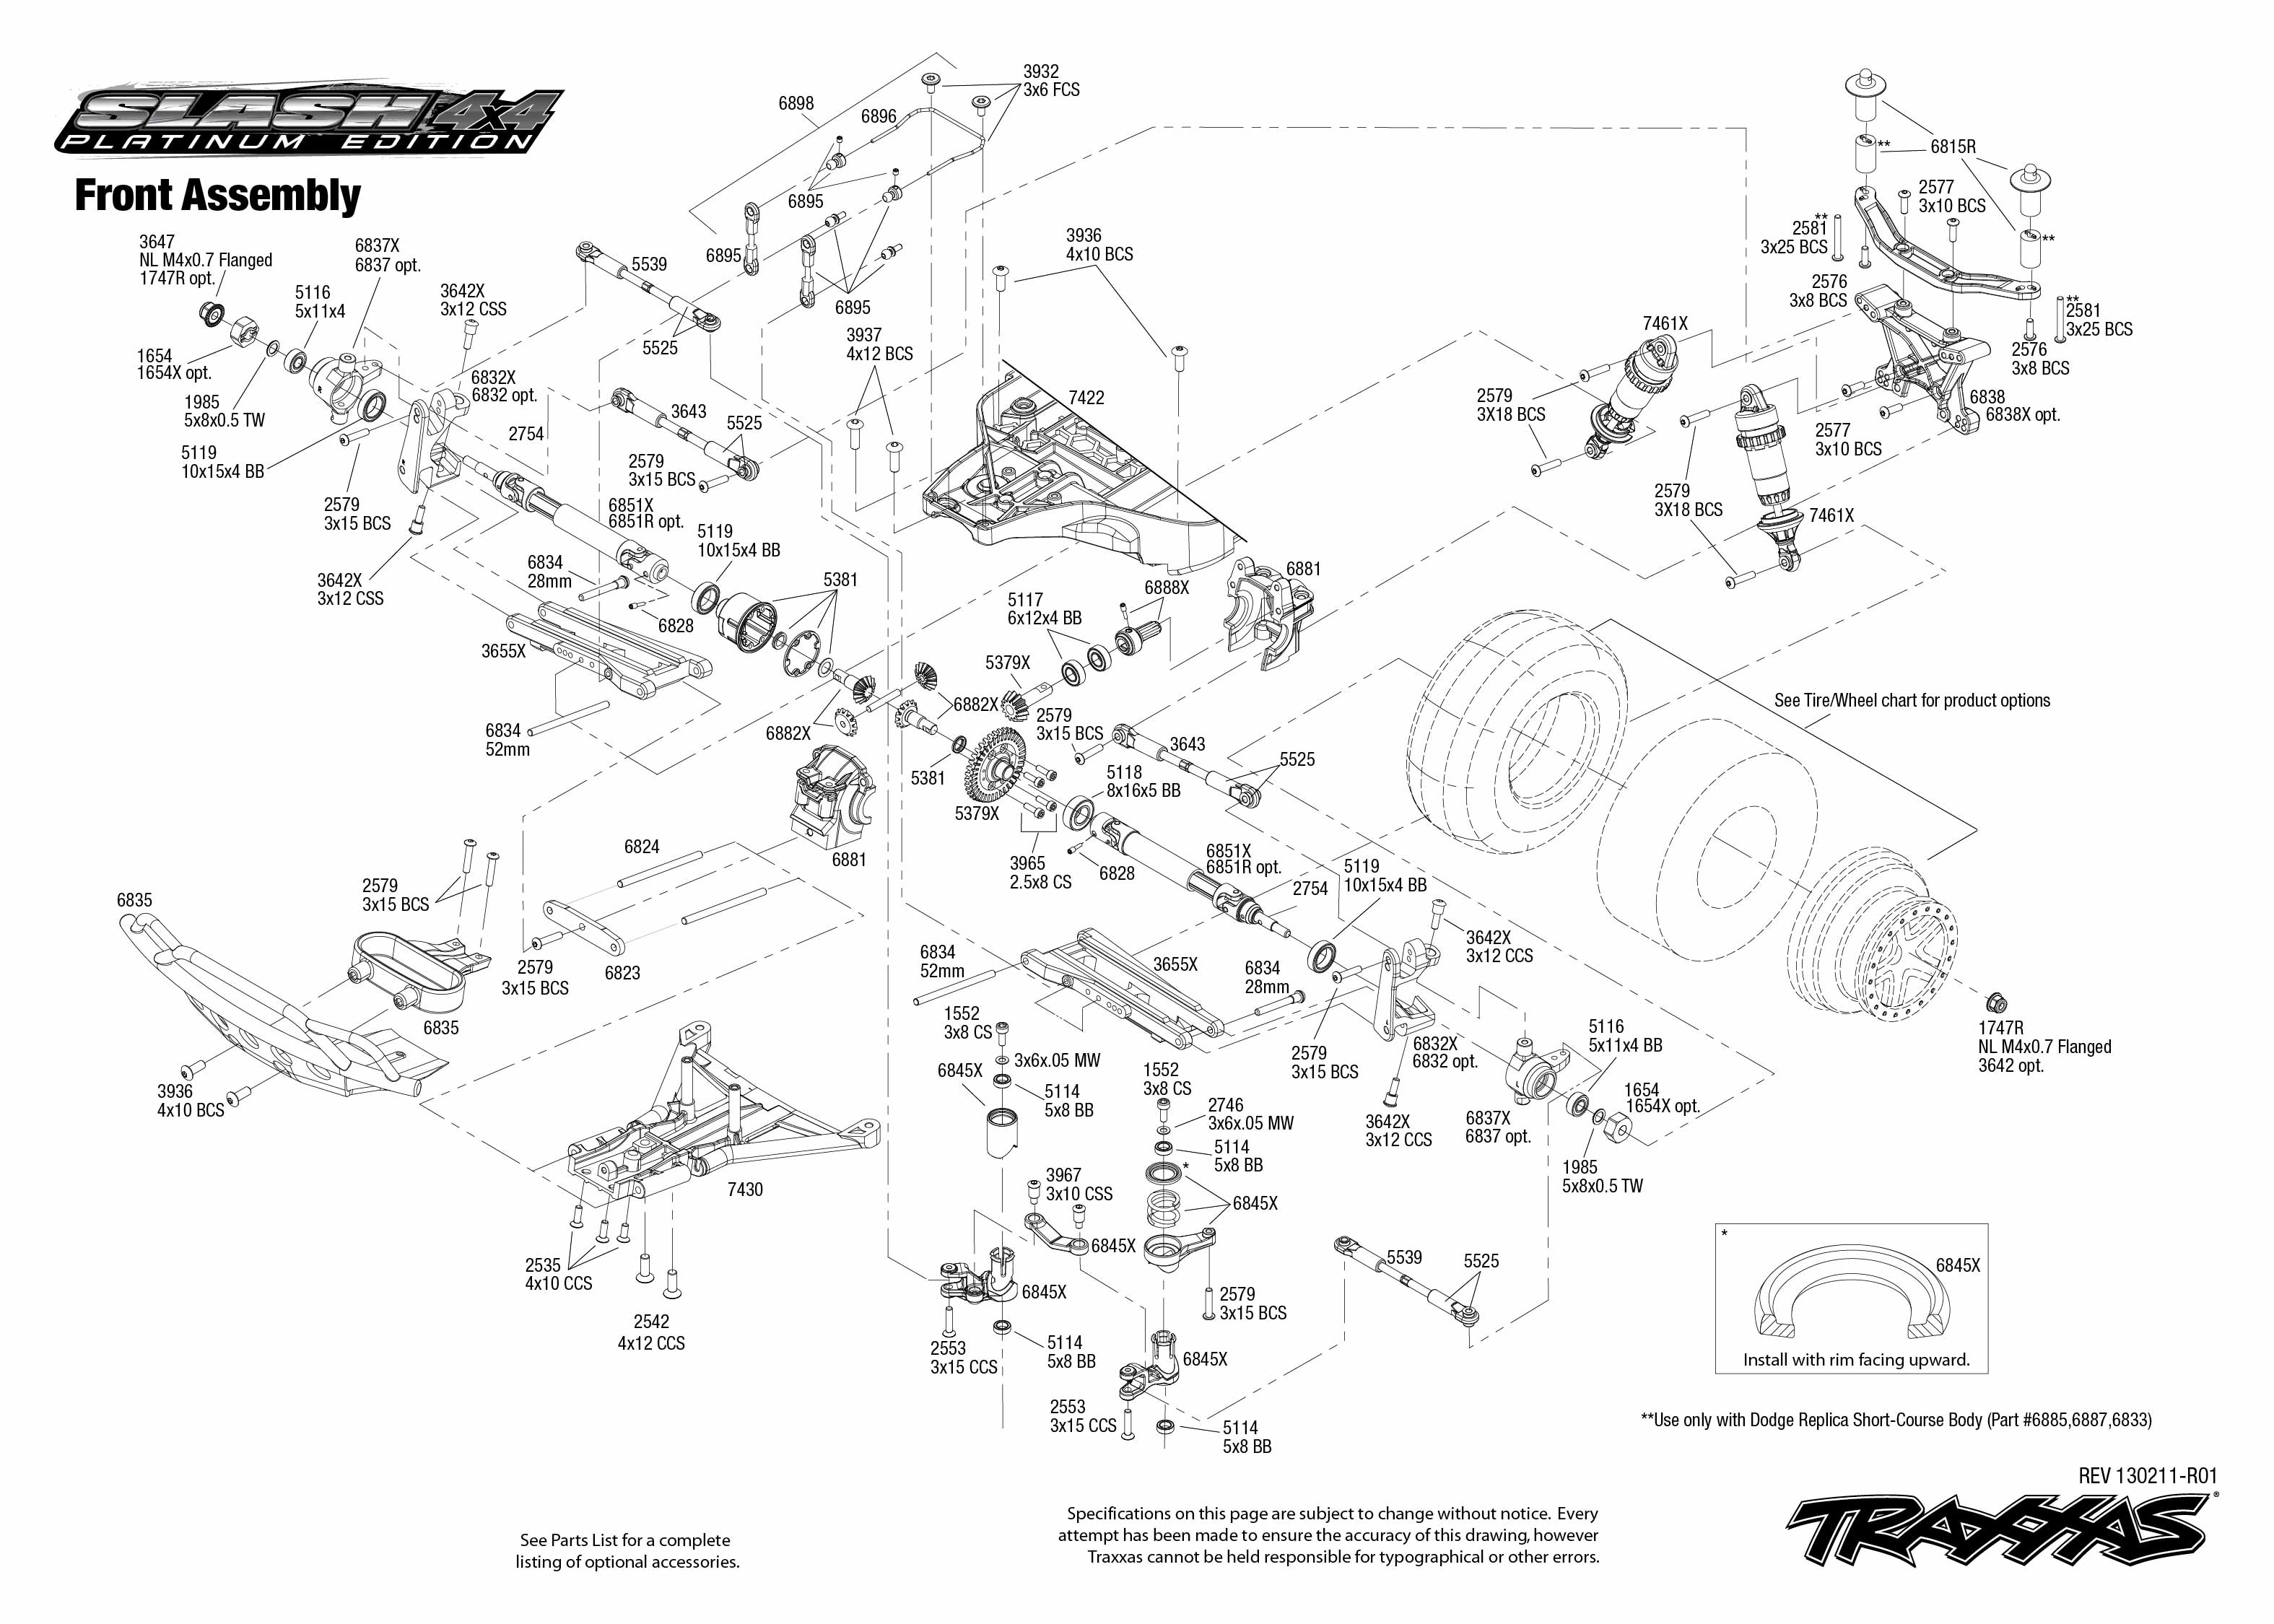 Traxxas Slash 2wd Parts Diagram Full Version Free